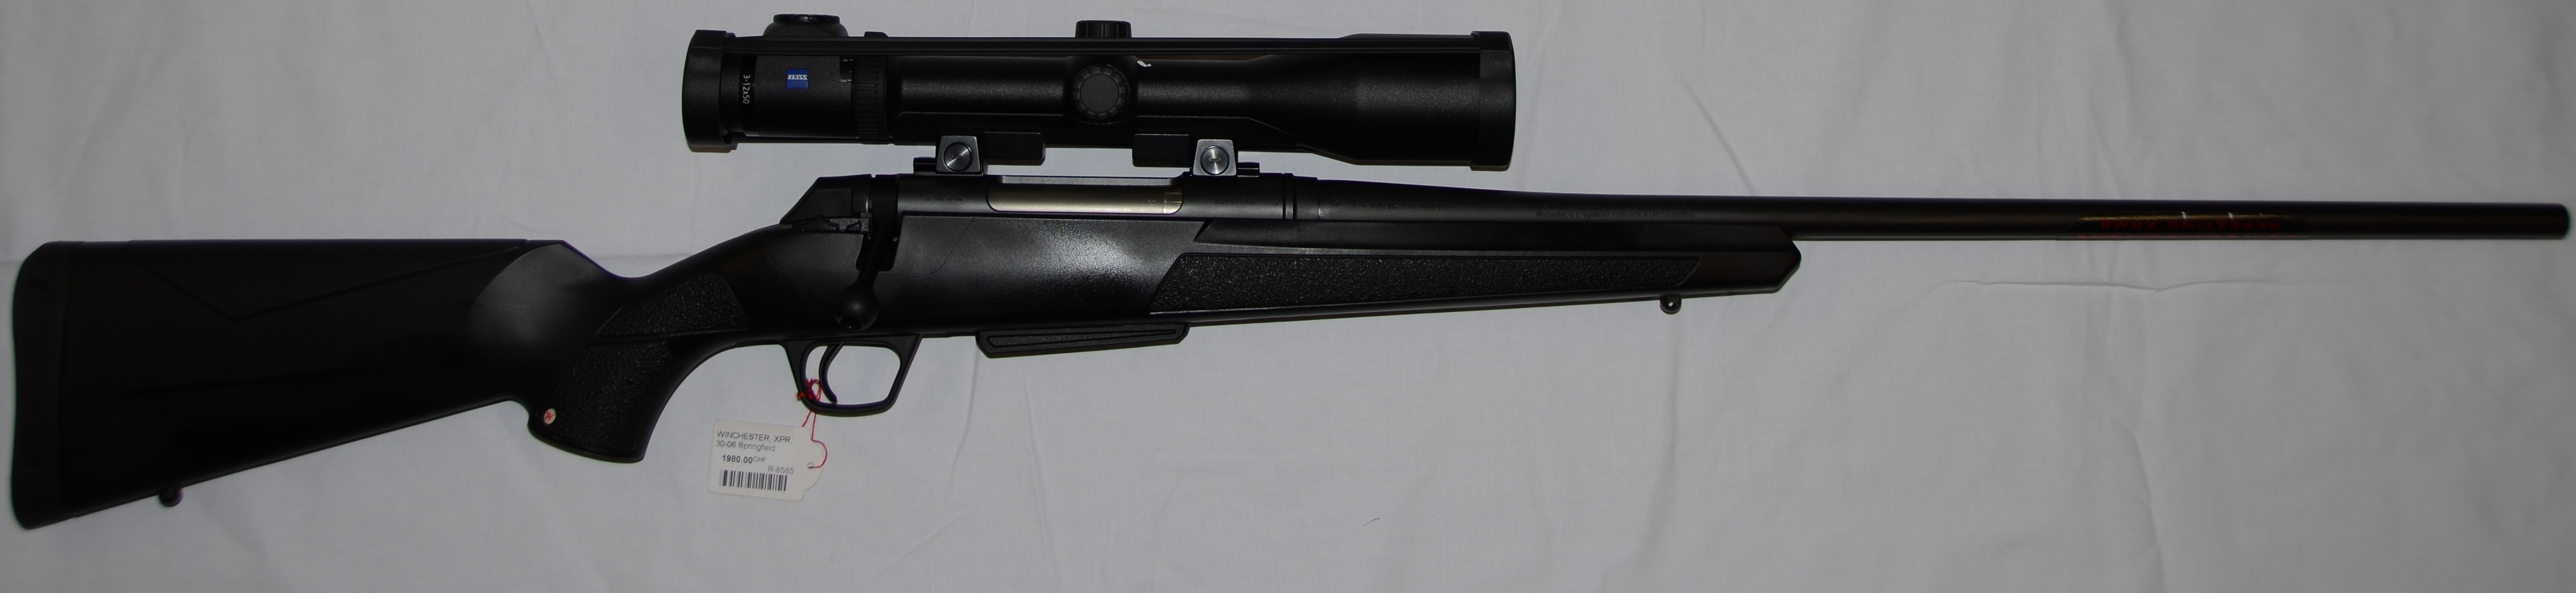 WINCHESTER XPR Image